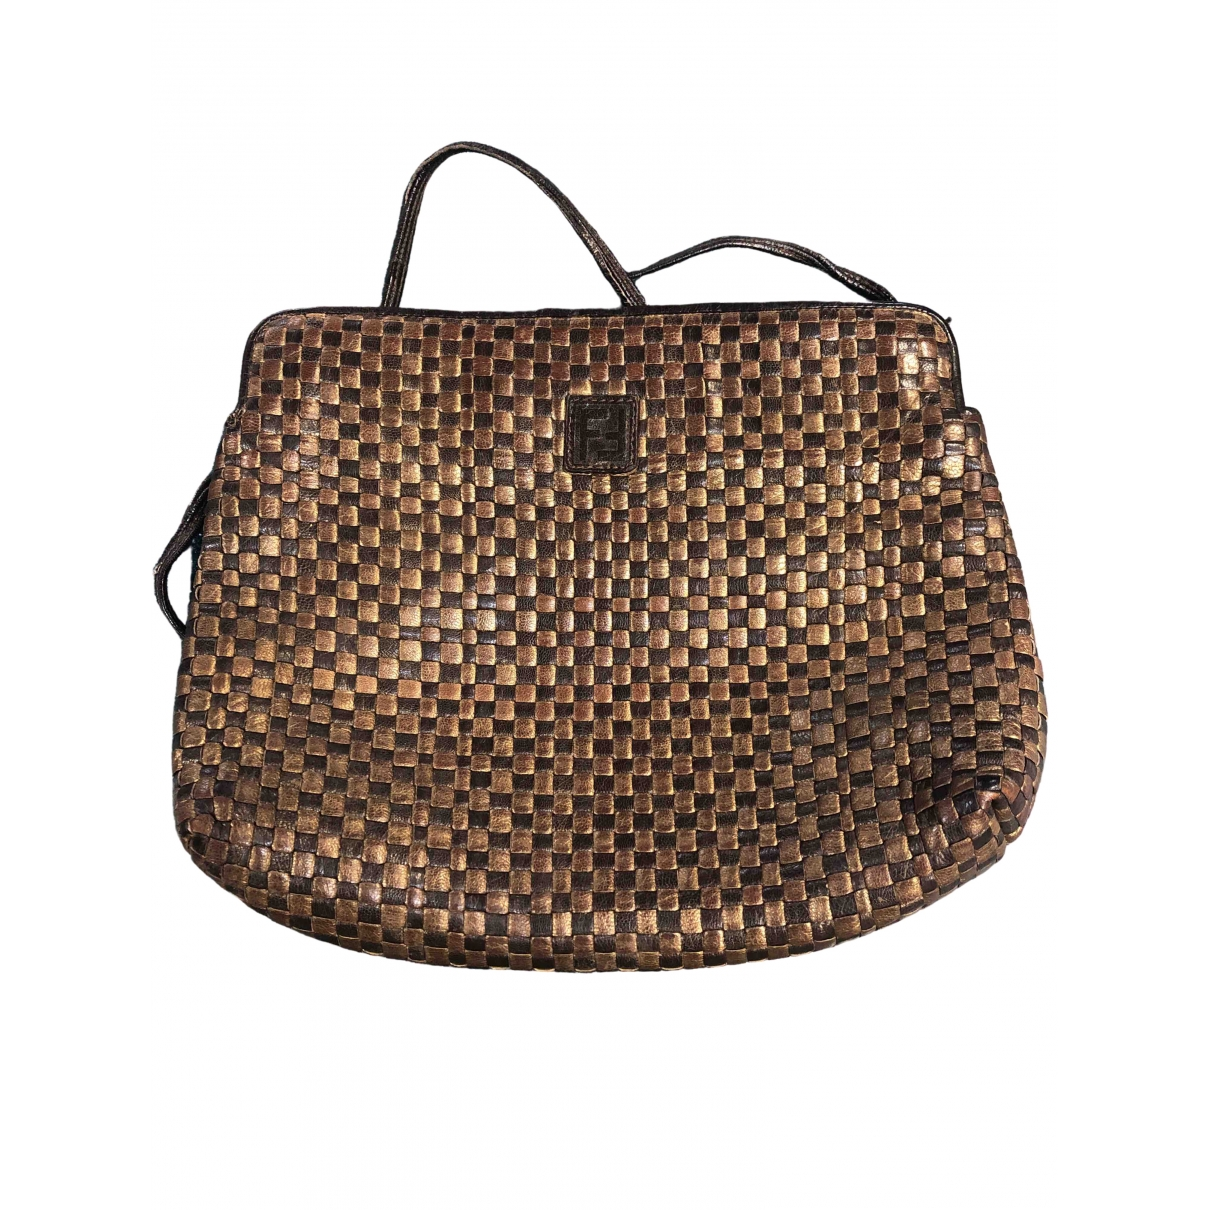 Fendi \N Brown Leather handbag for Women \N